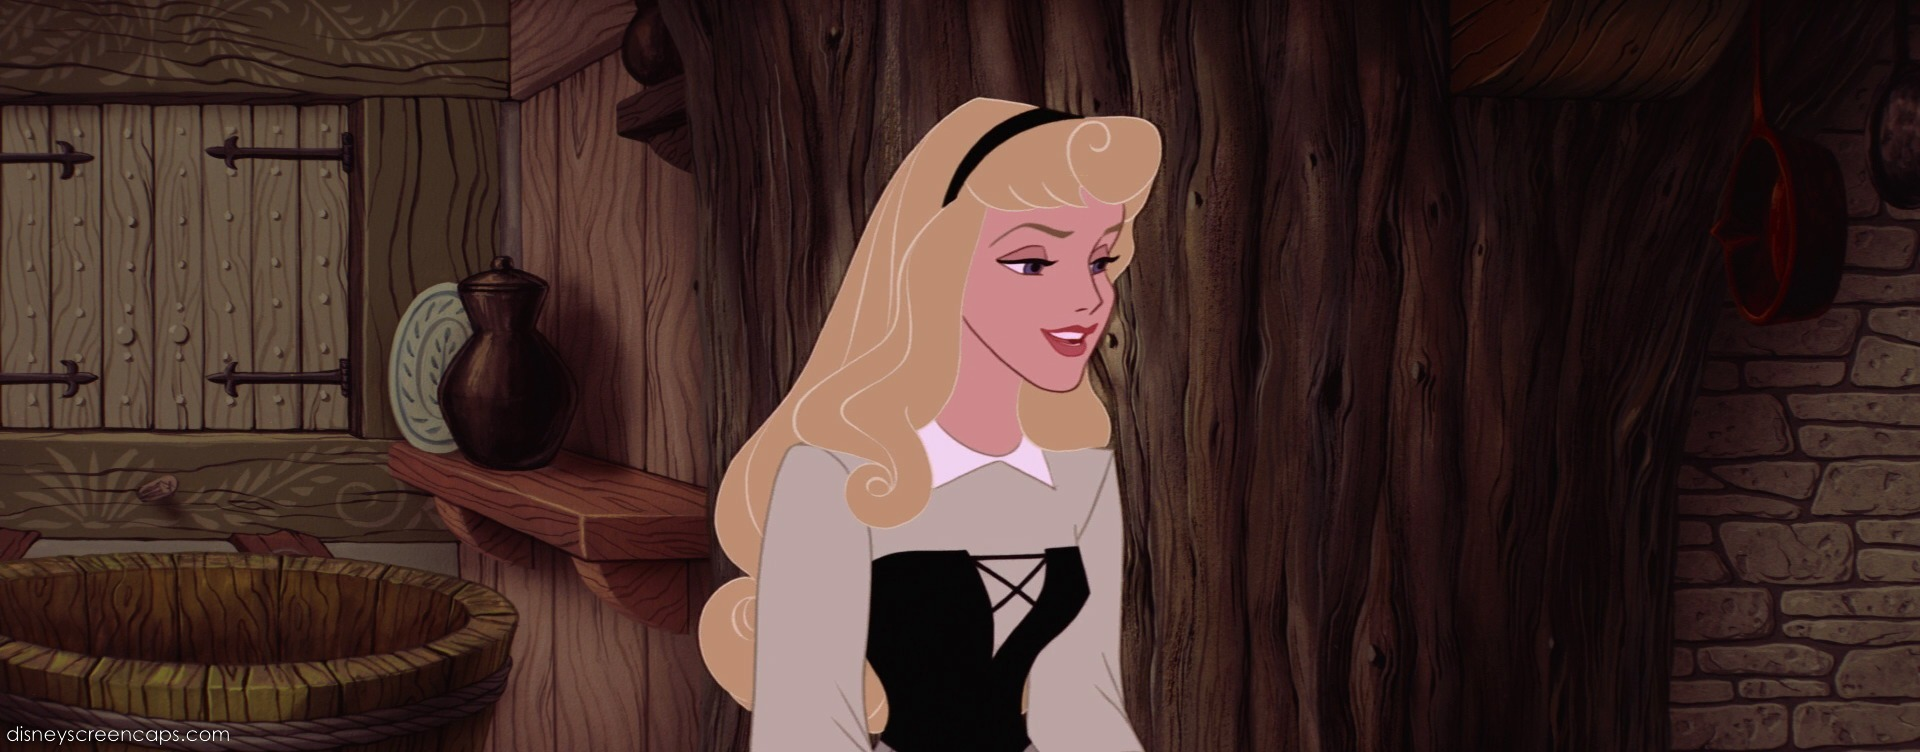 Hair color not hair style poll results disney princess fanpop - Disney Princess Which Disney Princess Is The Most Brave Counted By Comments Not Percentages